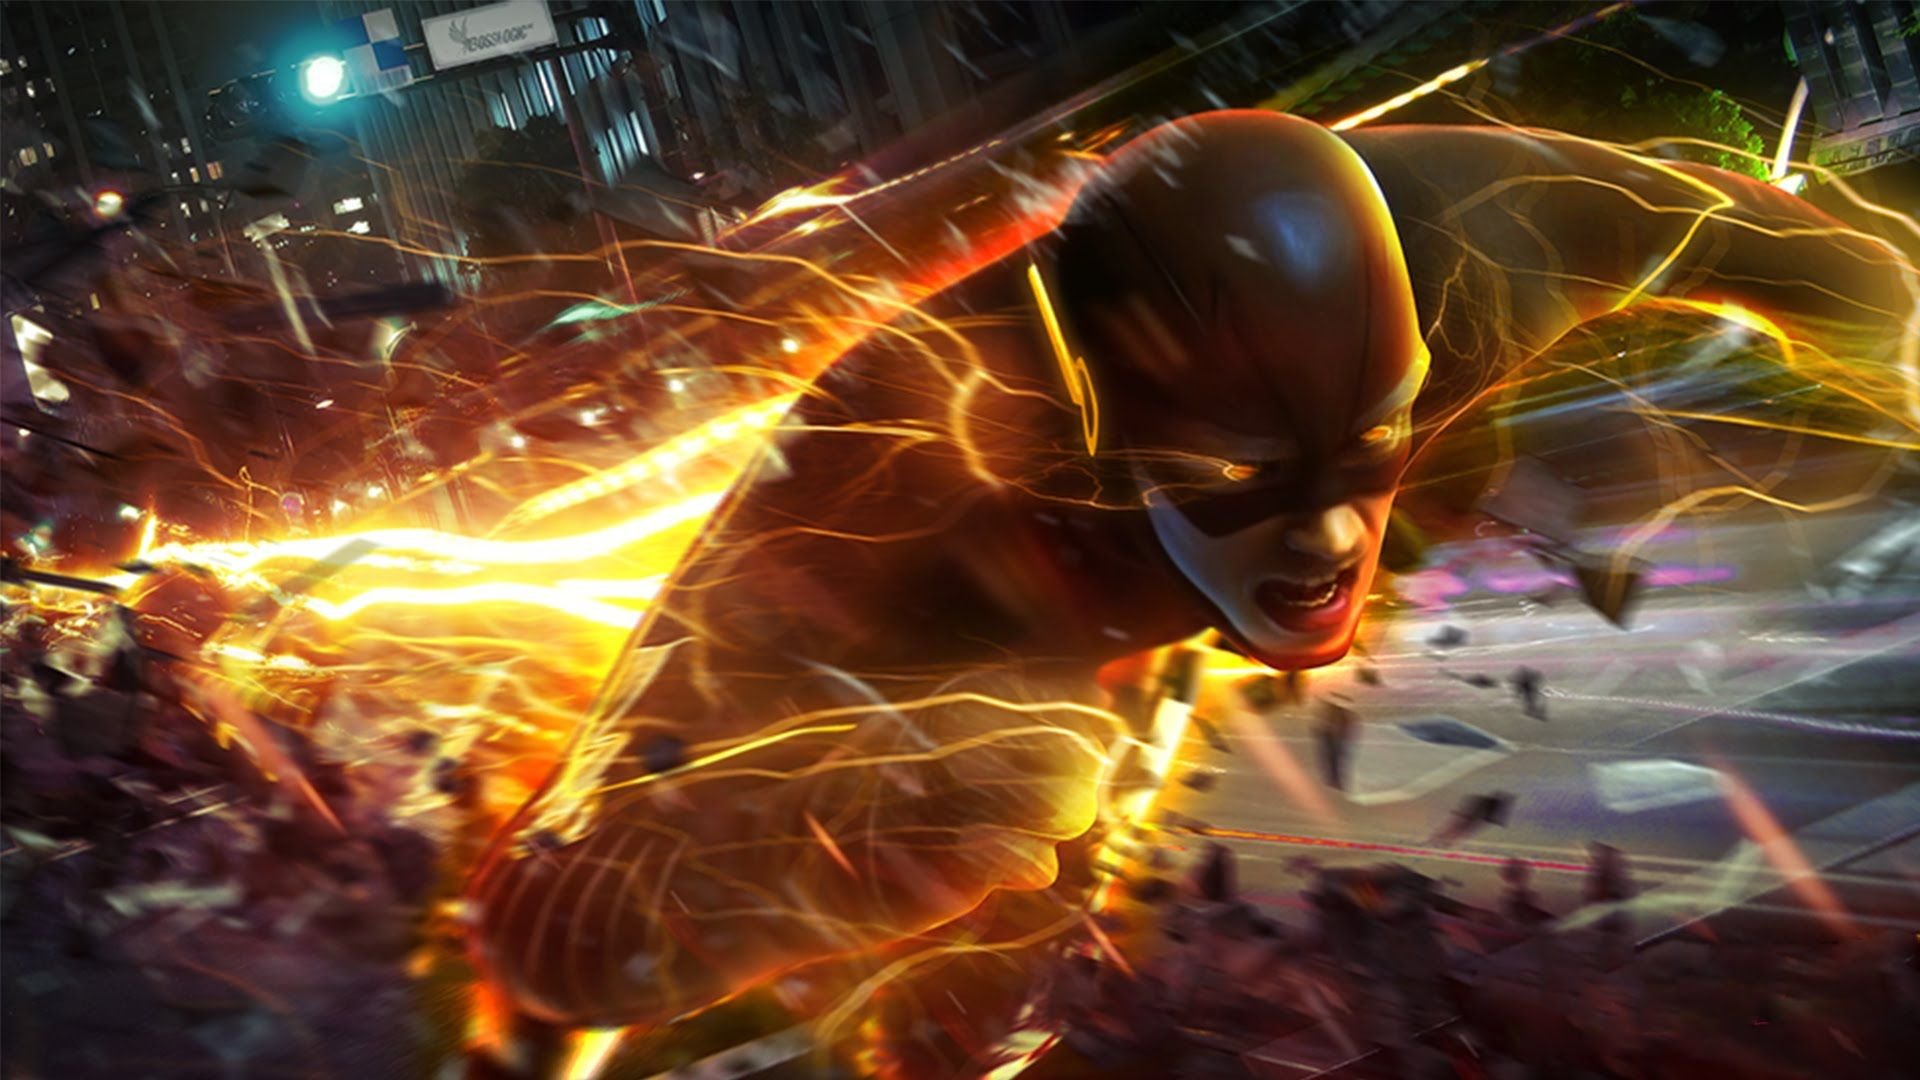 Barry Allen The Flash Wallpapers HD Free Download 1920x1080 Wallpaper 38